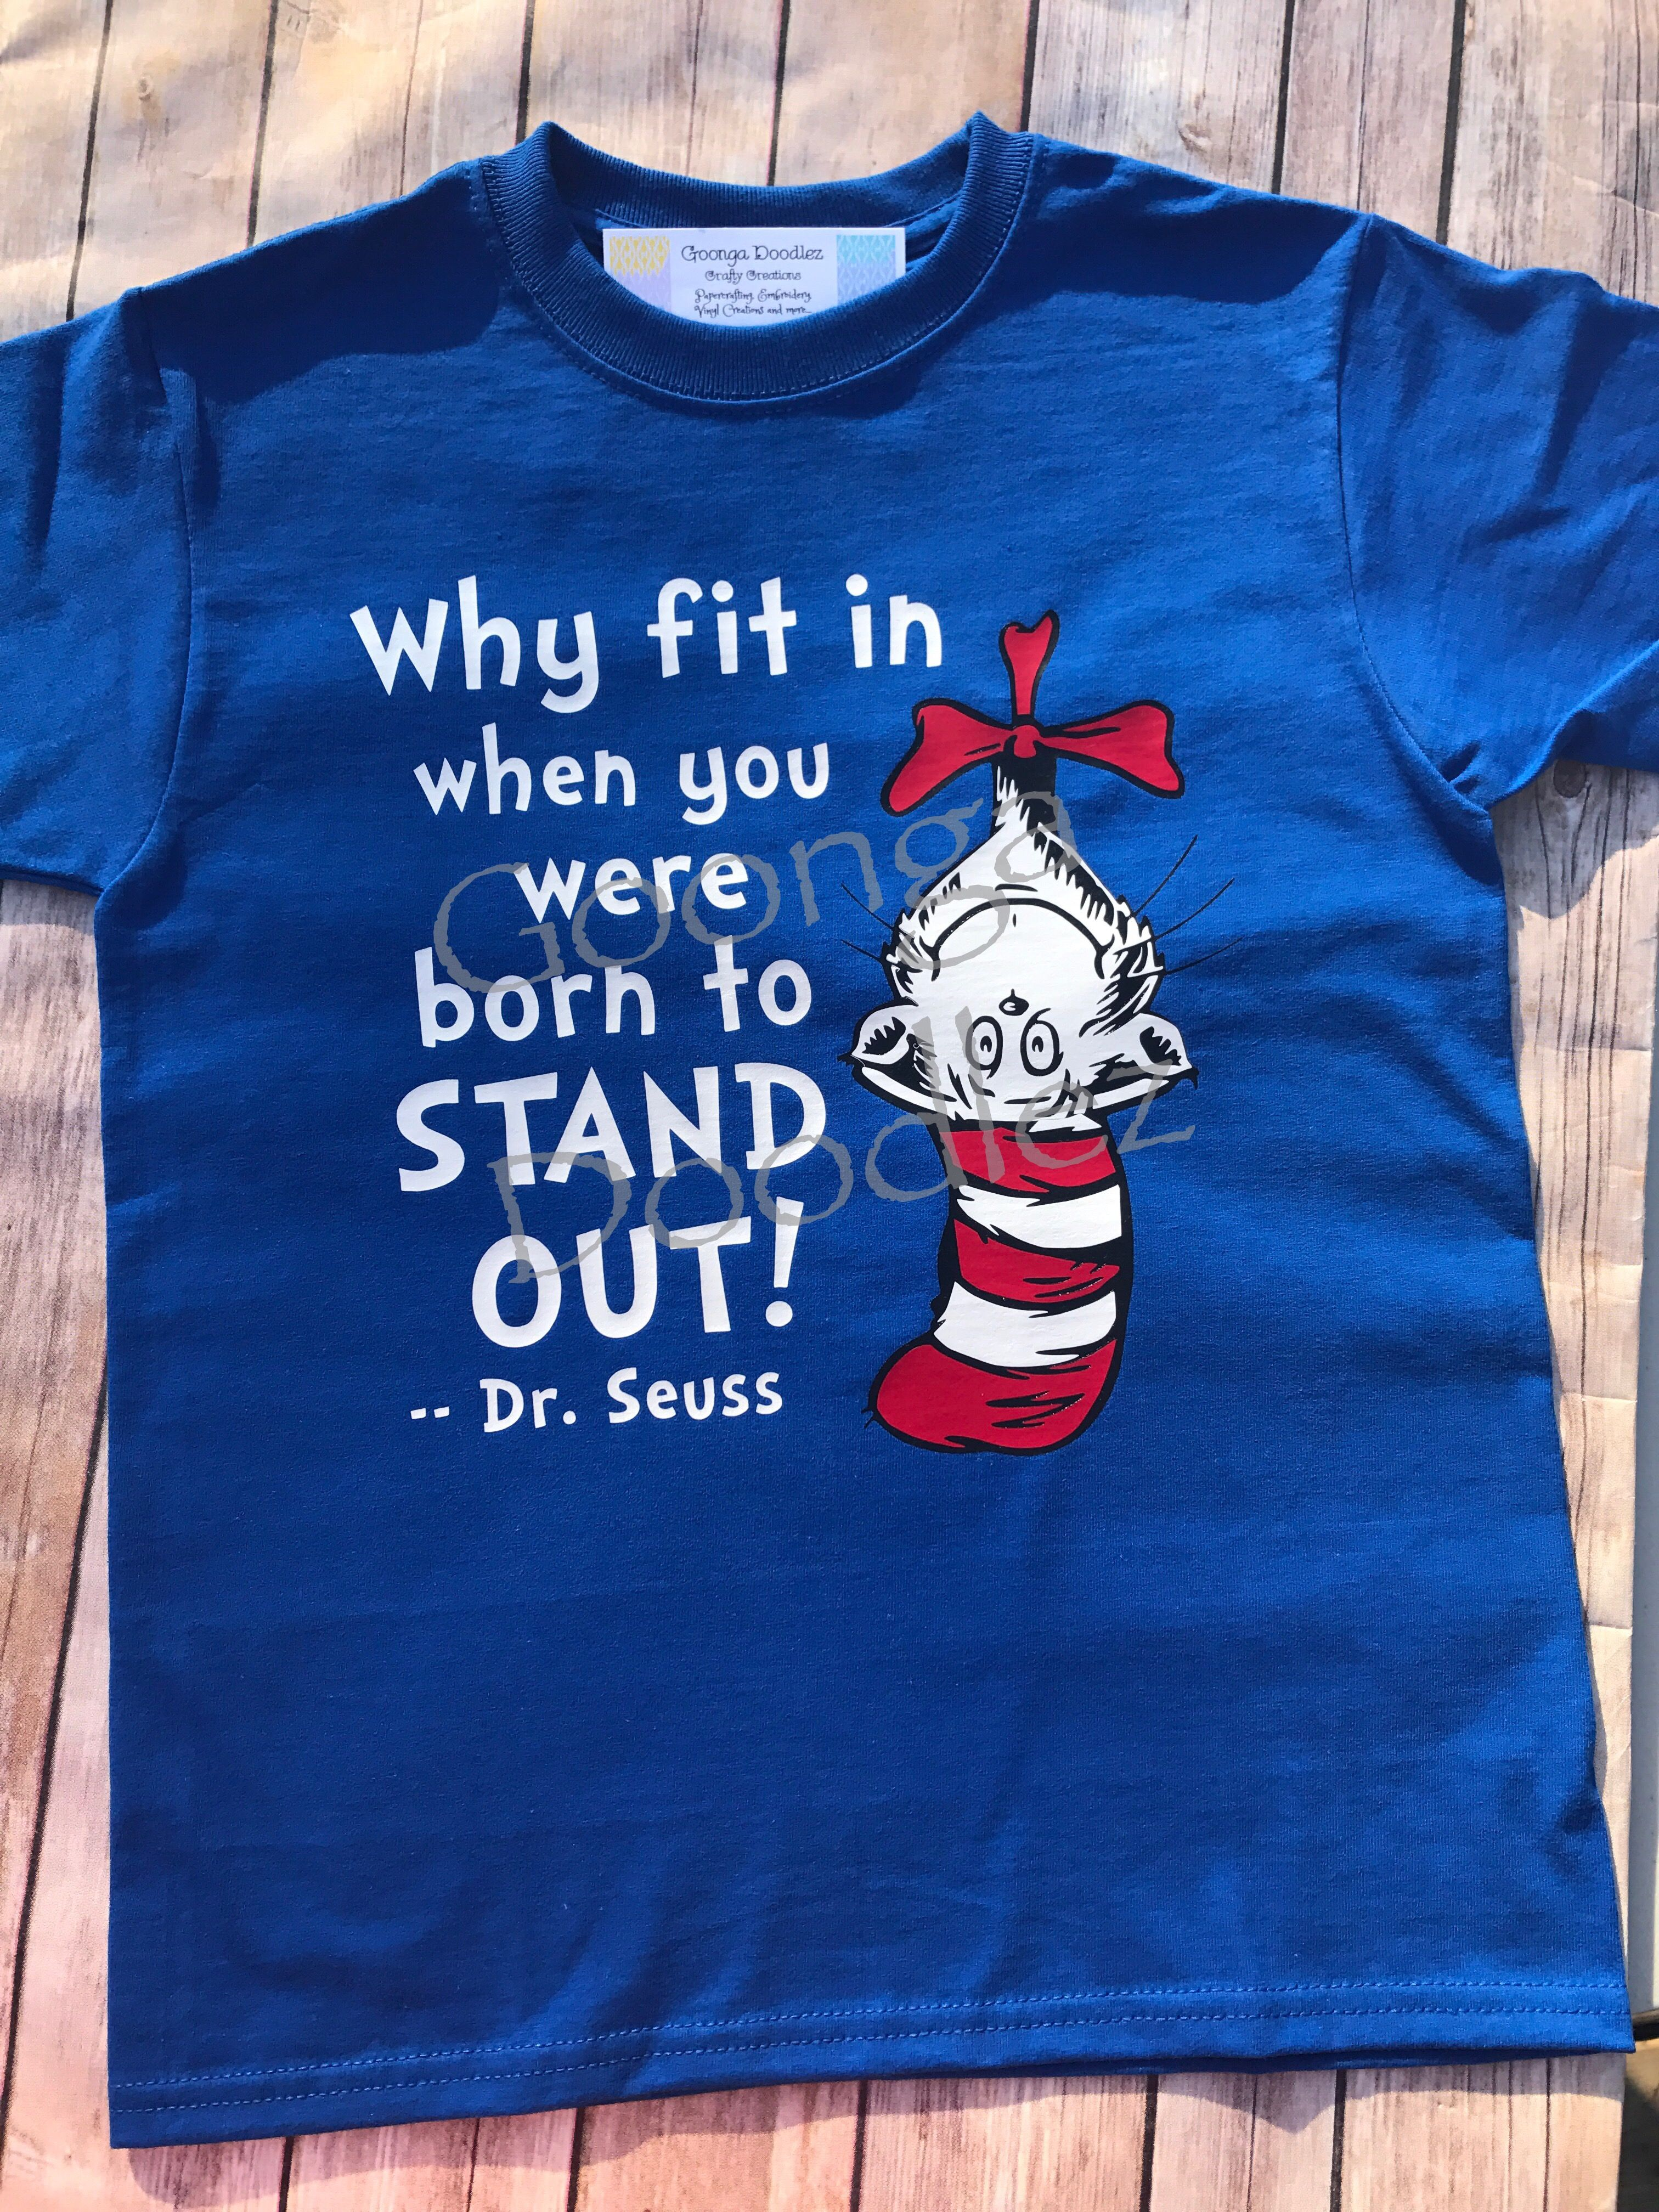 Dr seuss why fit in when you were born to stand out